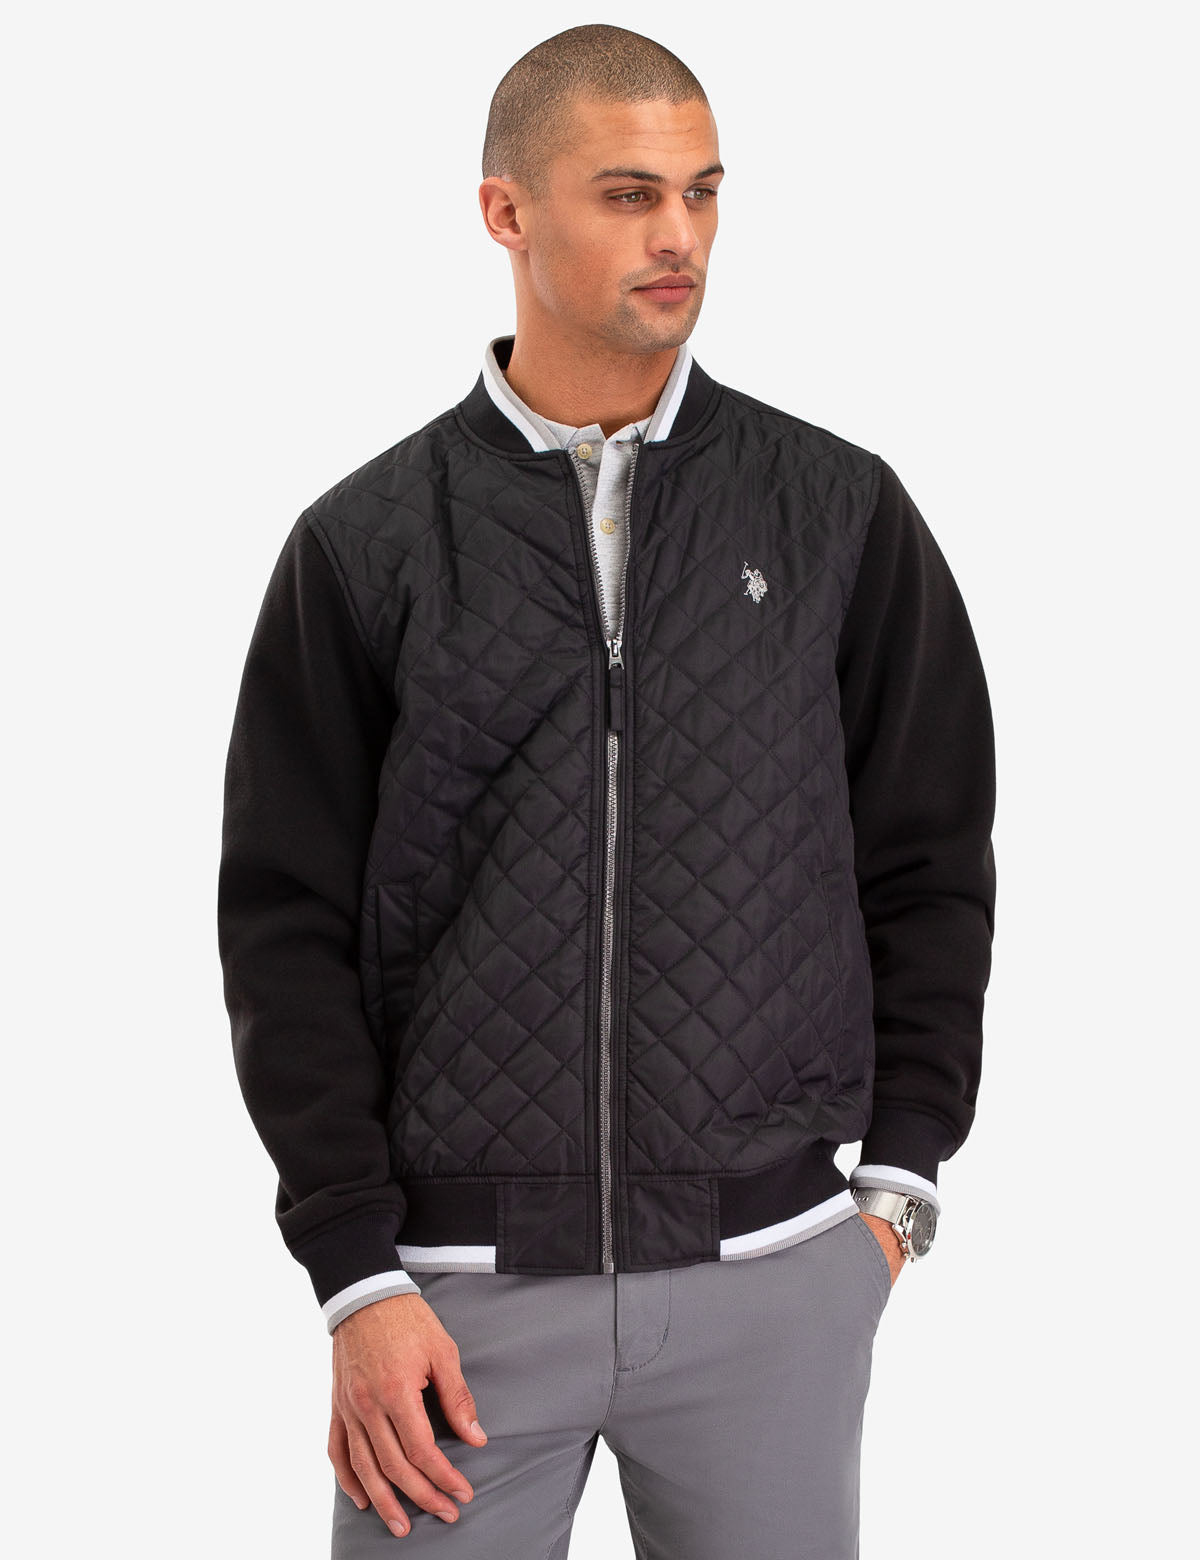 QUILTED KNIT SLEEVE JACKET - U.S. Polo Assn.